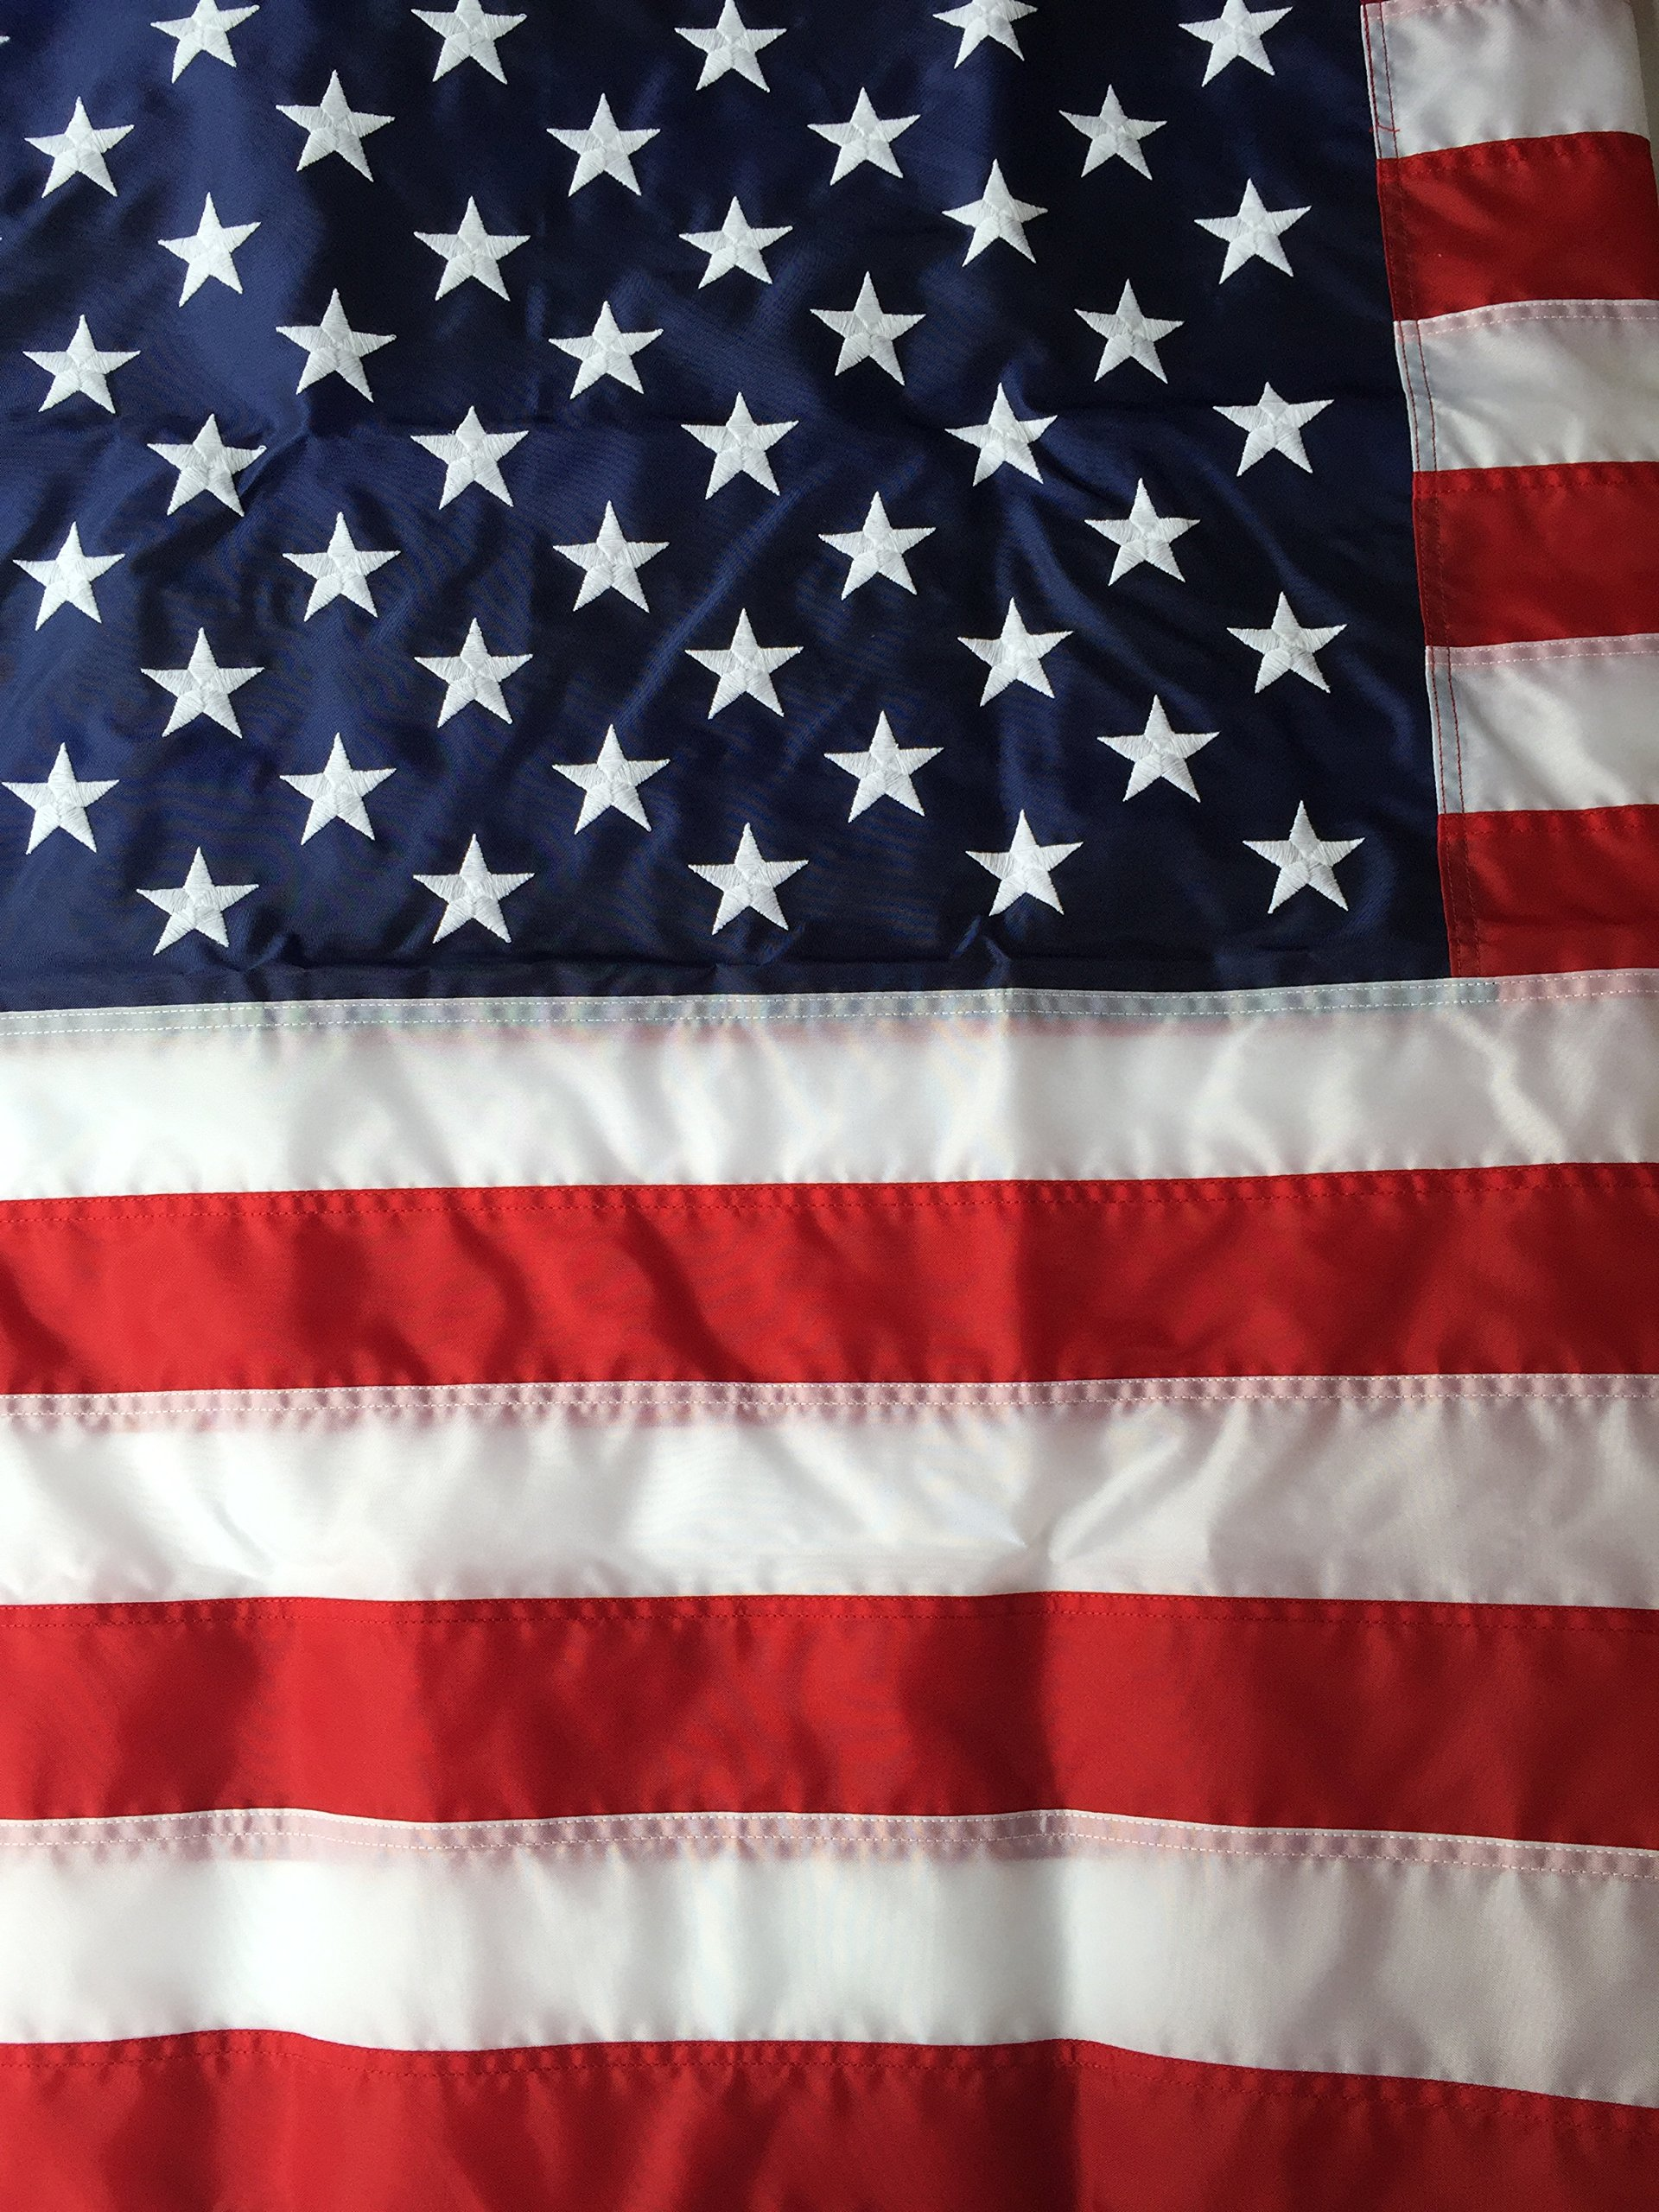 8x12 Best Commercial Grade Nylon American Flag 8'x12' US Flag Made in the USA Embroidered Stars Sewn Stripes by Flags Poles And More by Flags Poles And More